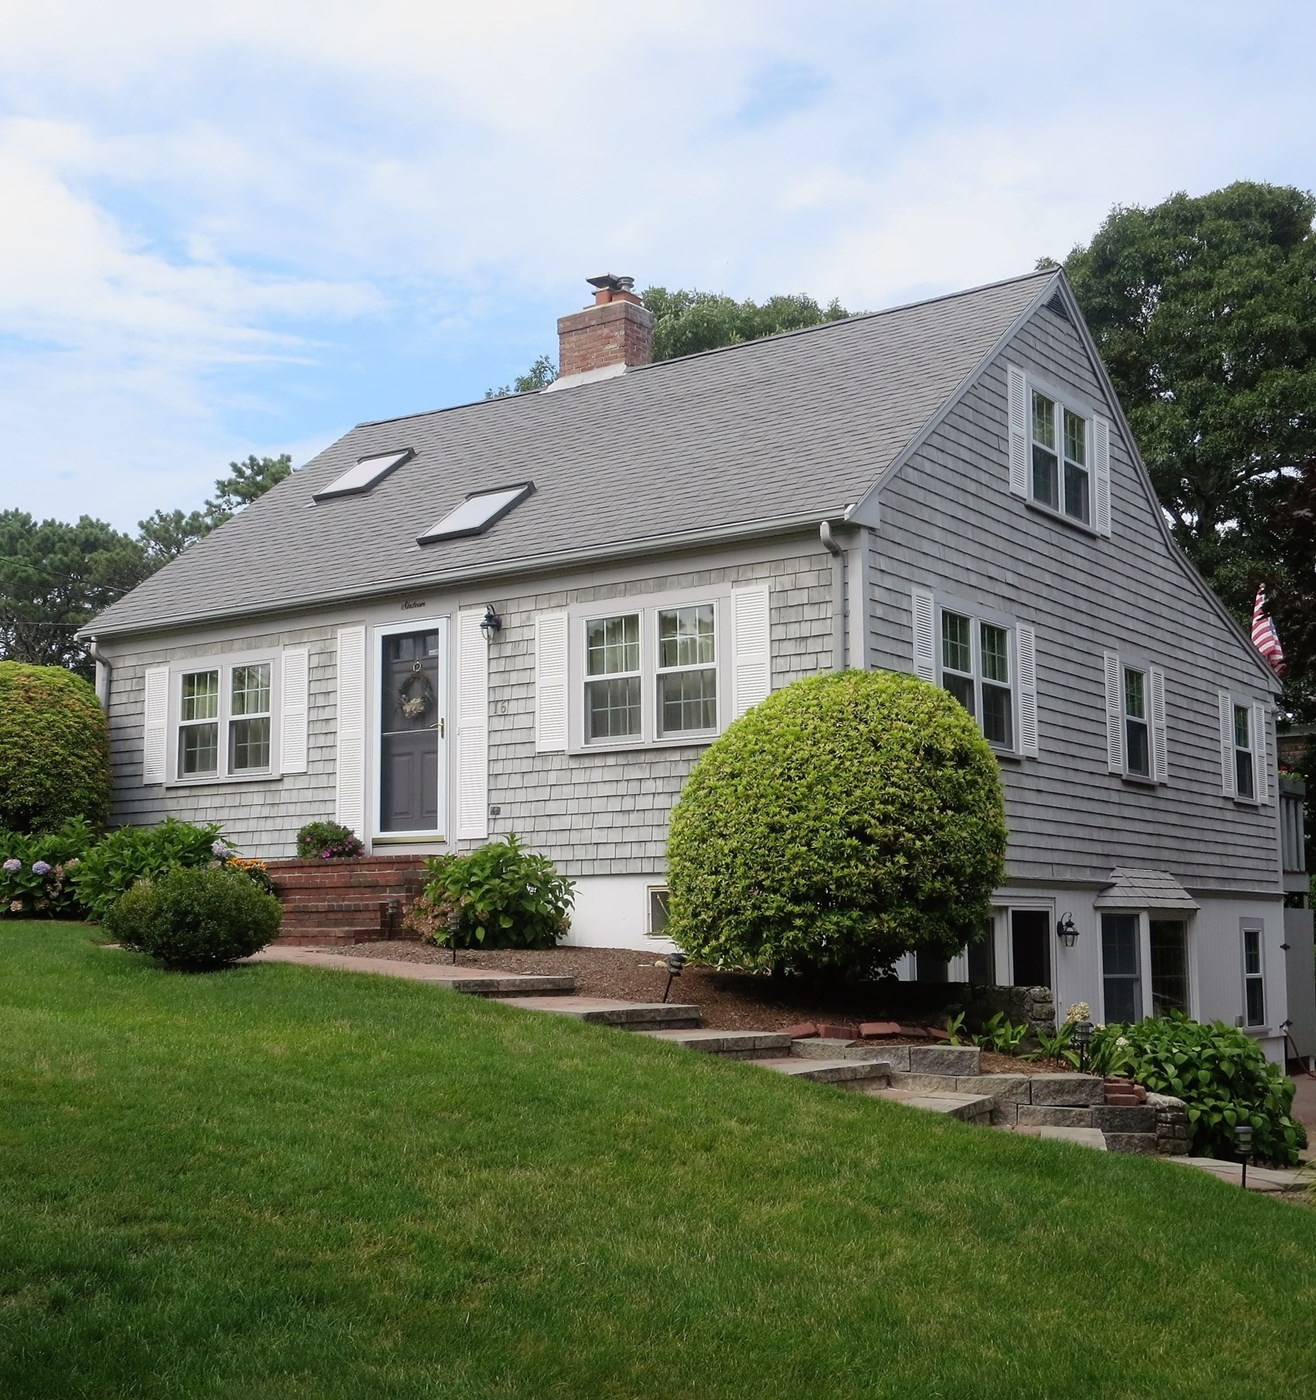 Yarmouth Vacation Rental Home In Cape Cod MA 02673, 1/2